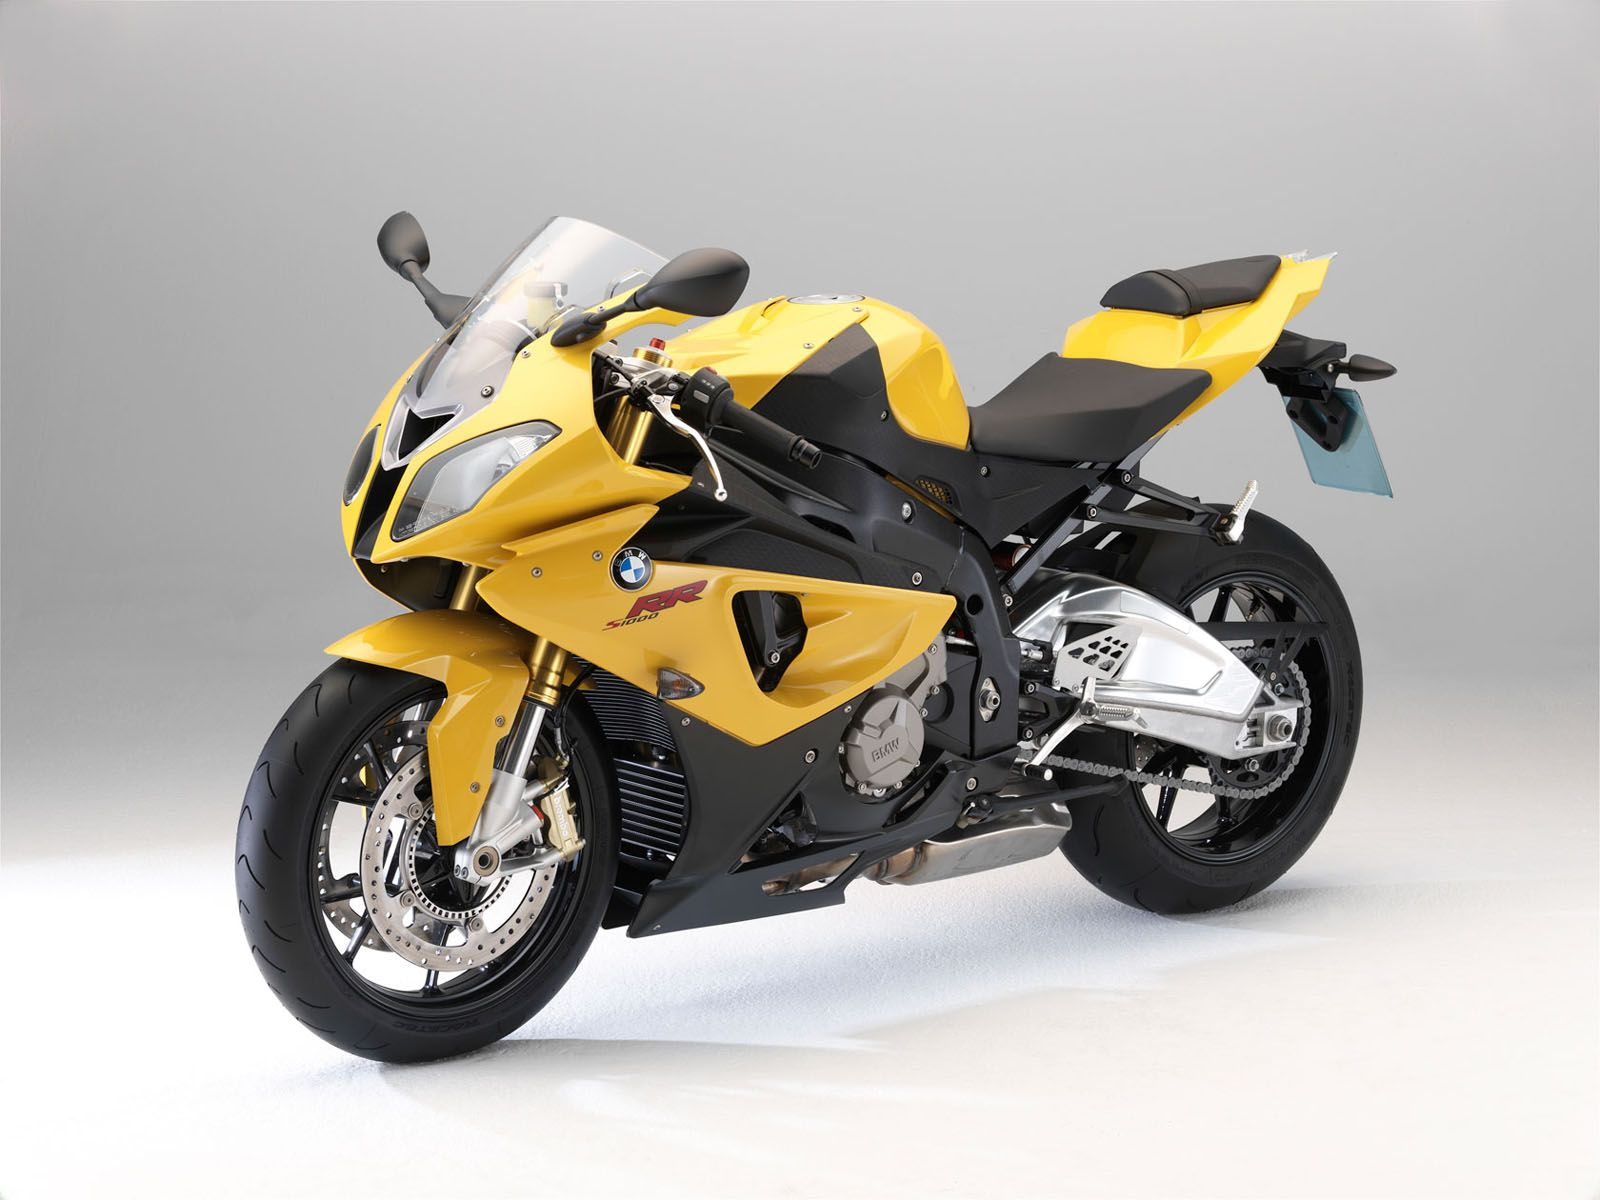 bmw s1000rr yellow front side wallpaper - 1600x1200